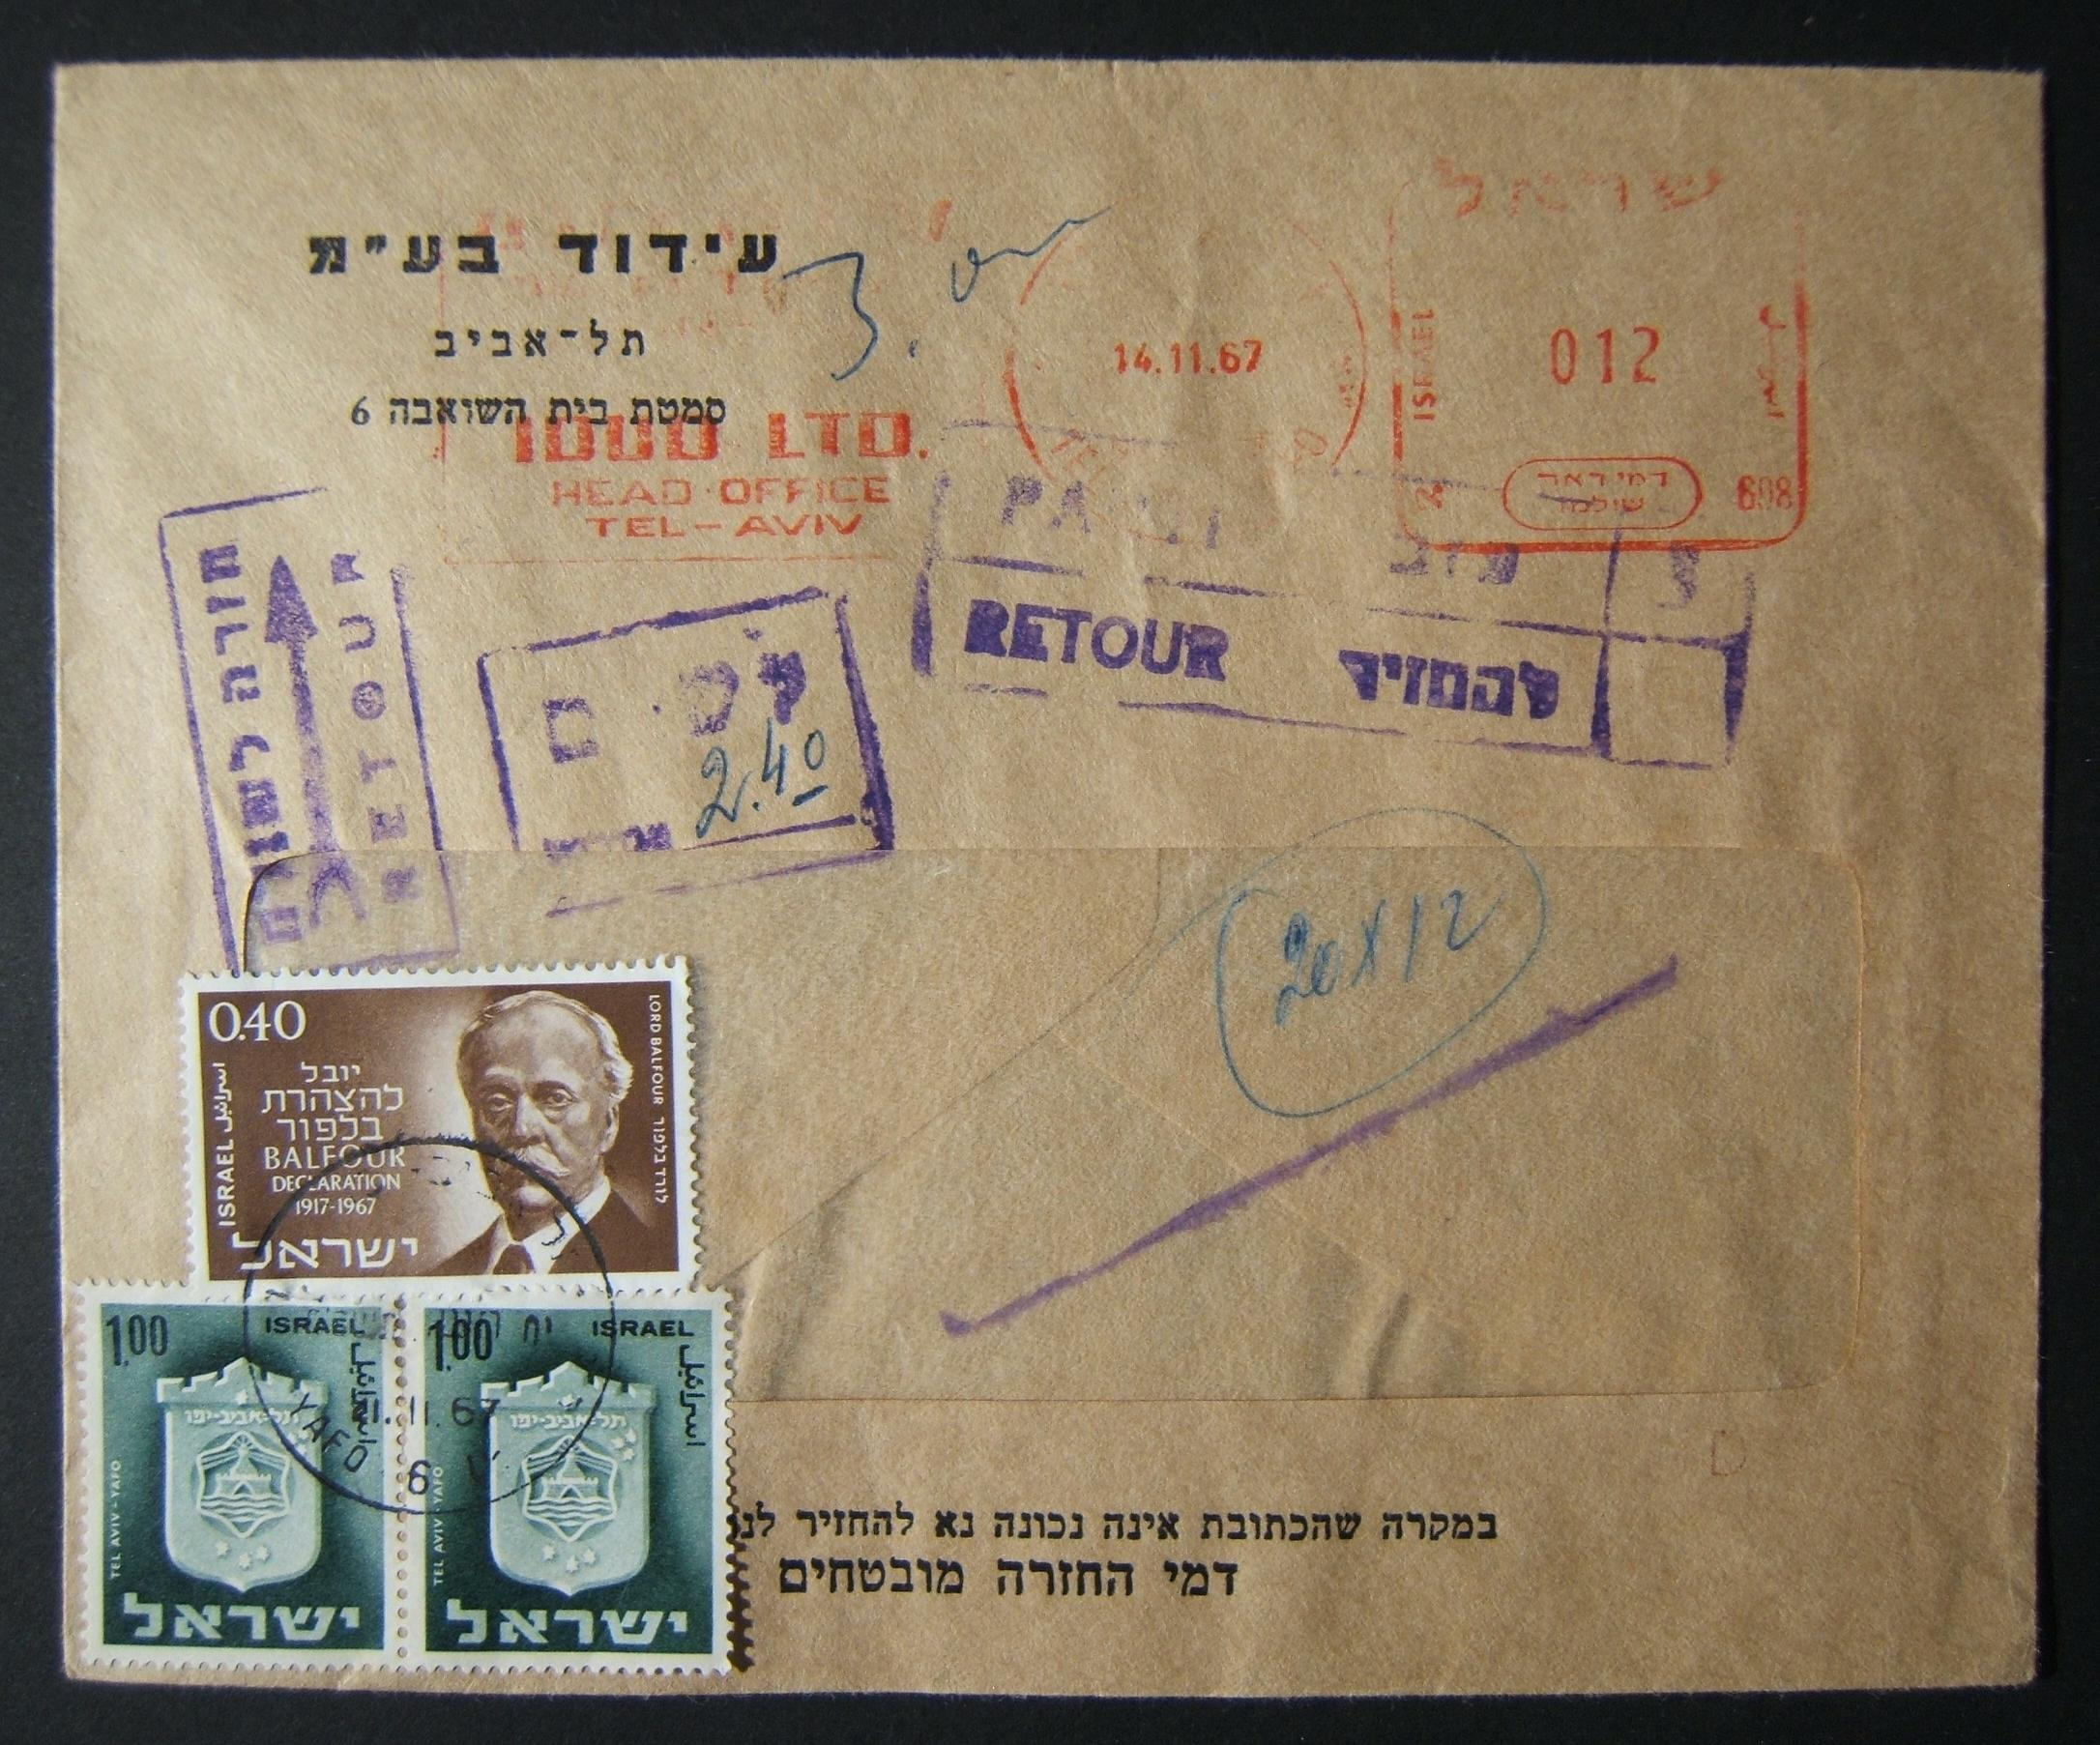 1967 domestic 'top of the pile' taxed franking: 14-11-67 printed matter cover ex TLV branch of Idud Ltd. and franked by meter payment at the DO-12 period 12 Ag PM rate but returned